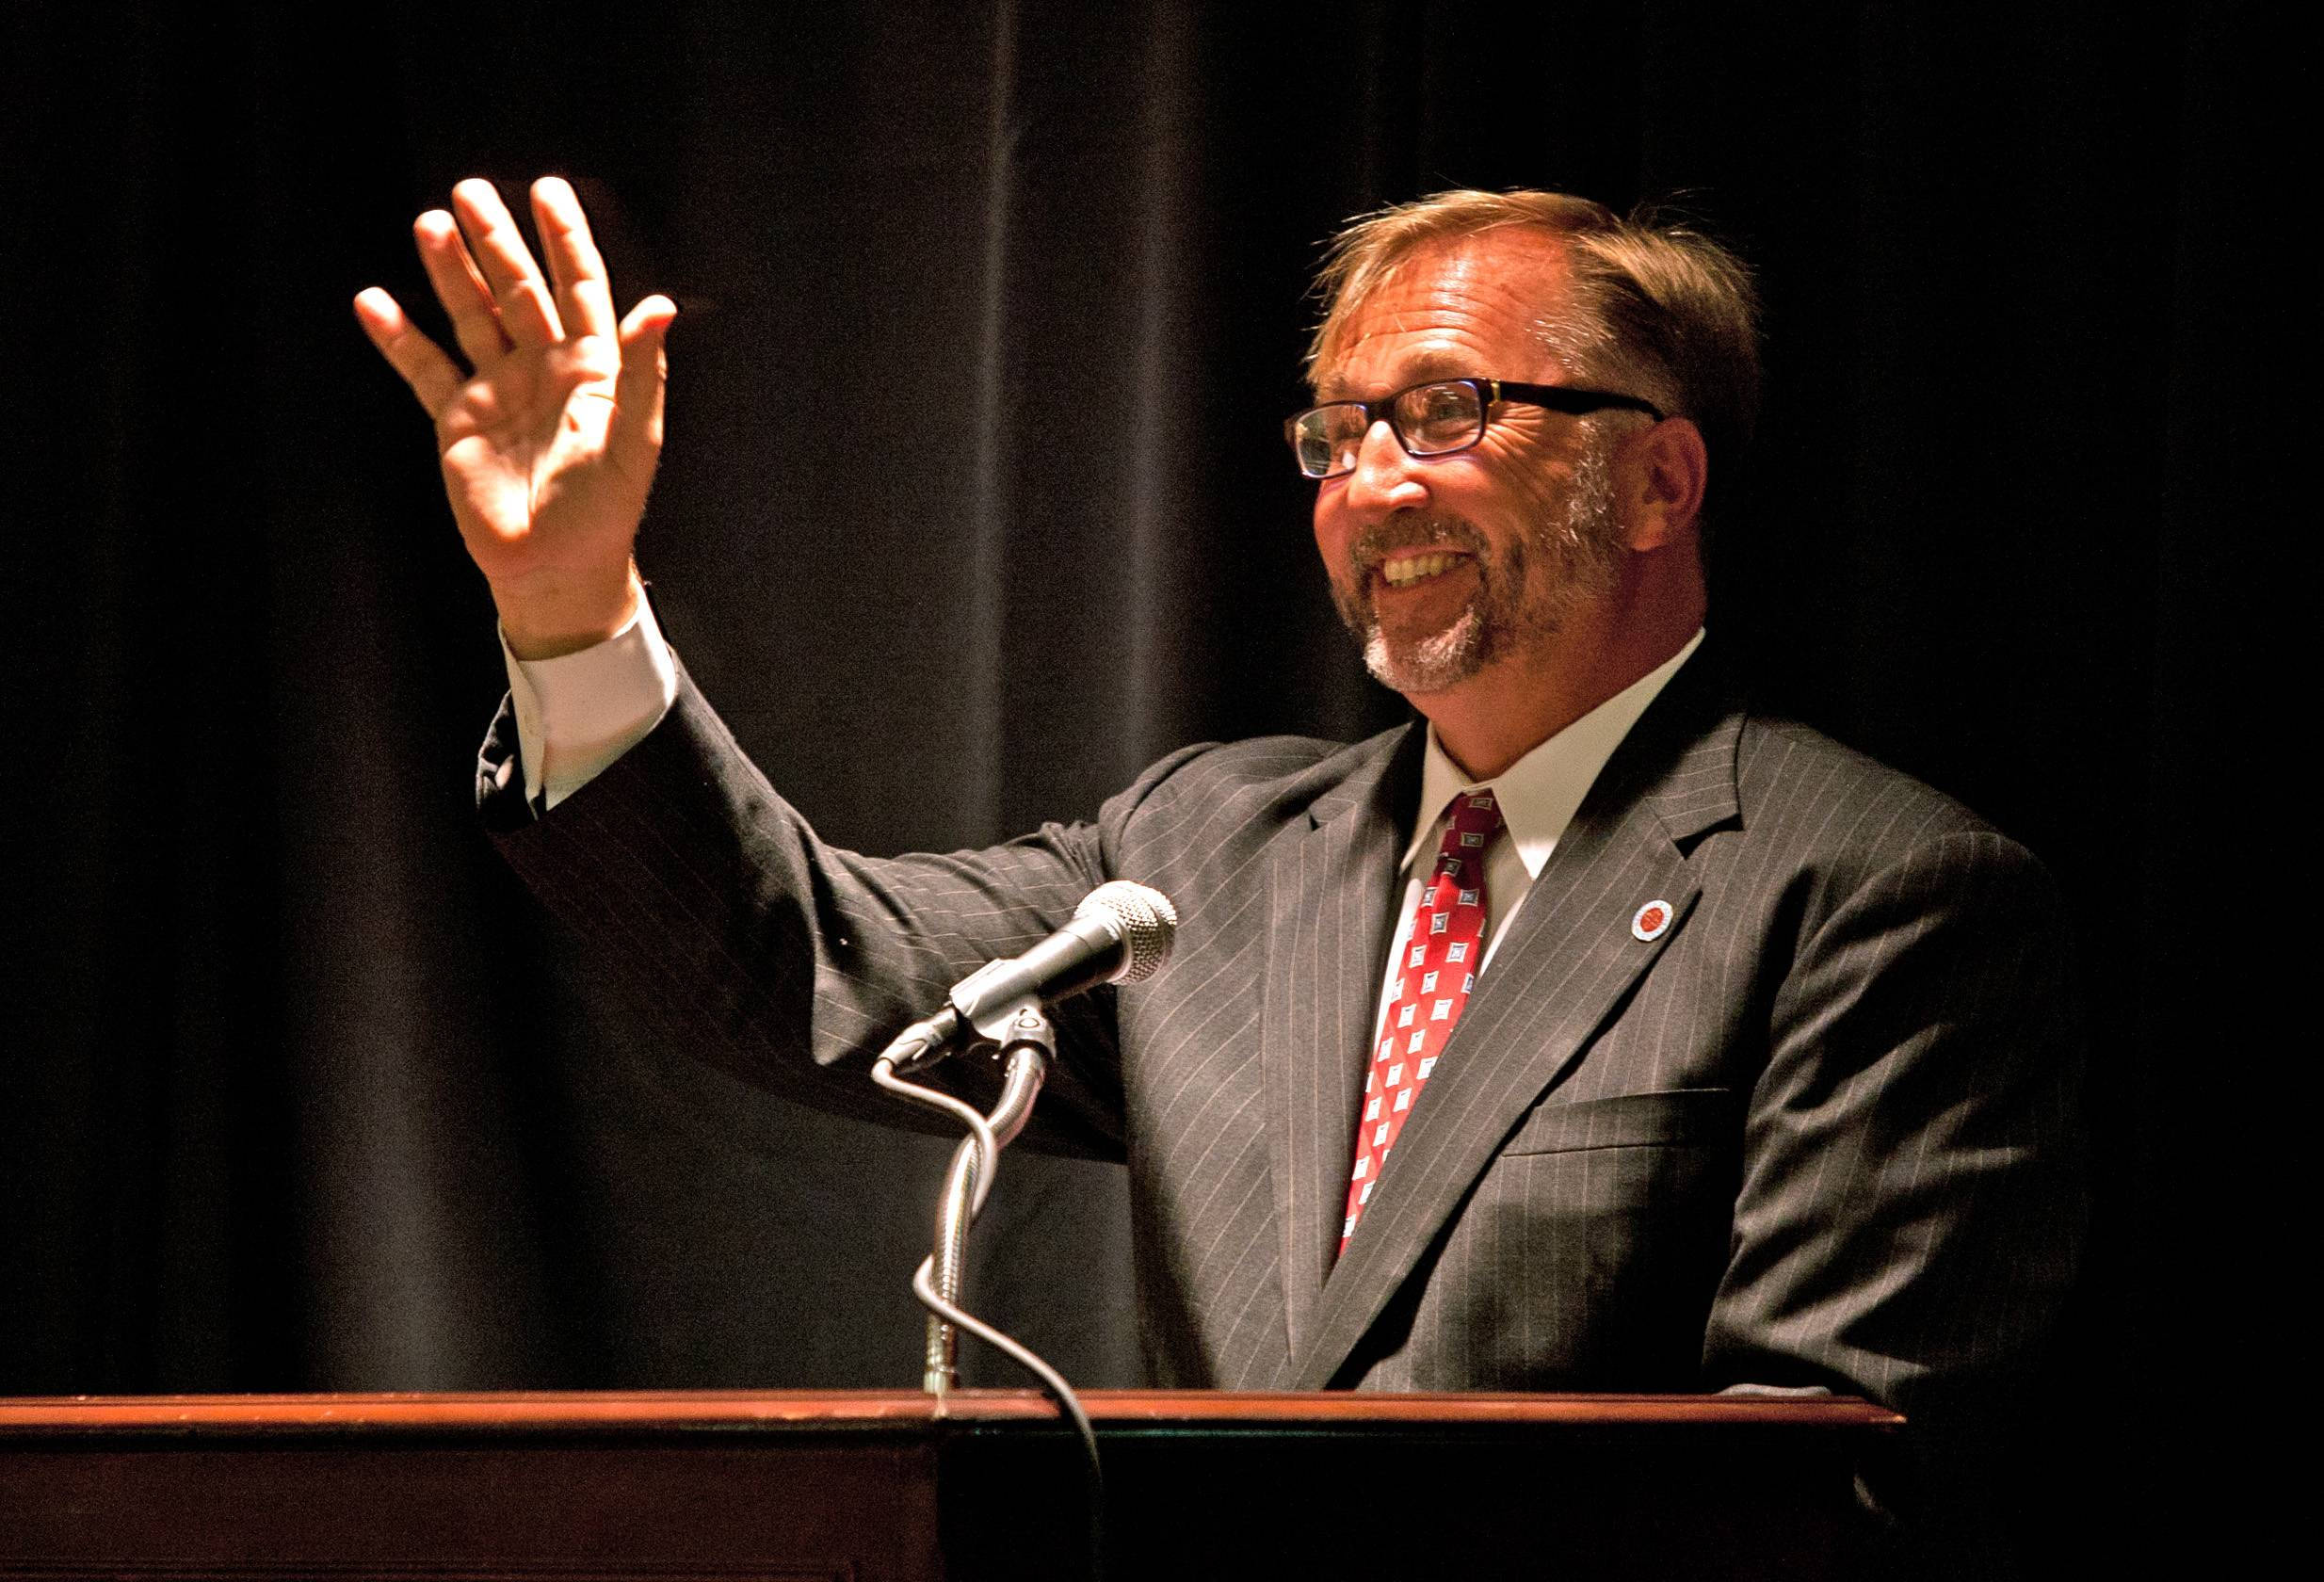 New Benedictine University President Michael S. Brophy waves to a camera Tuesday that was feeding his speech to the university's sites in Asia. Brophy will take over in mid-August from President William Carroll, who is stepping down after 20 years.